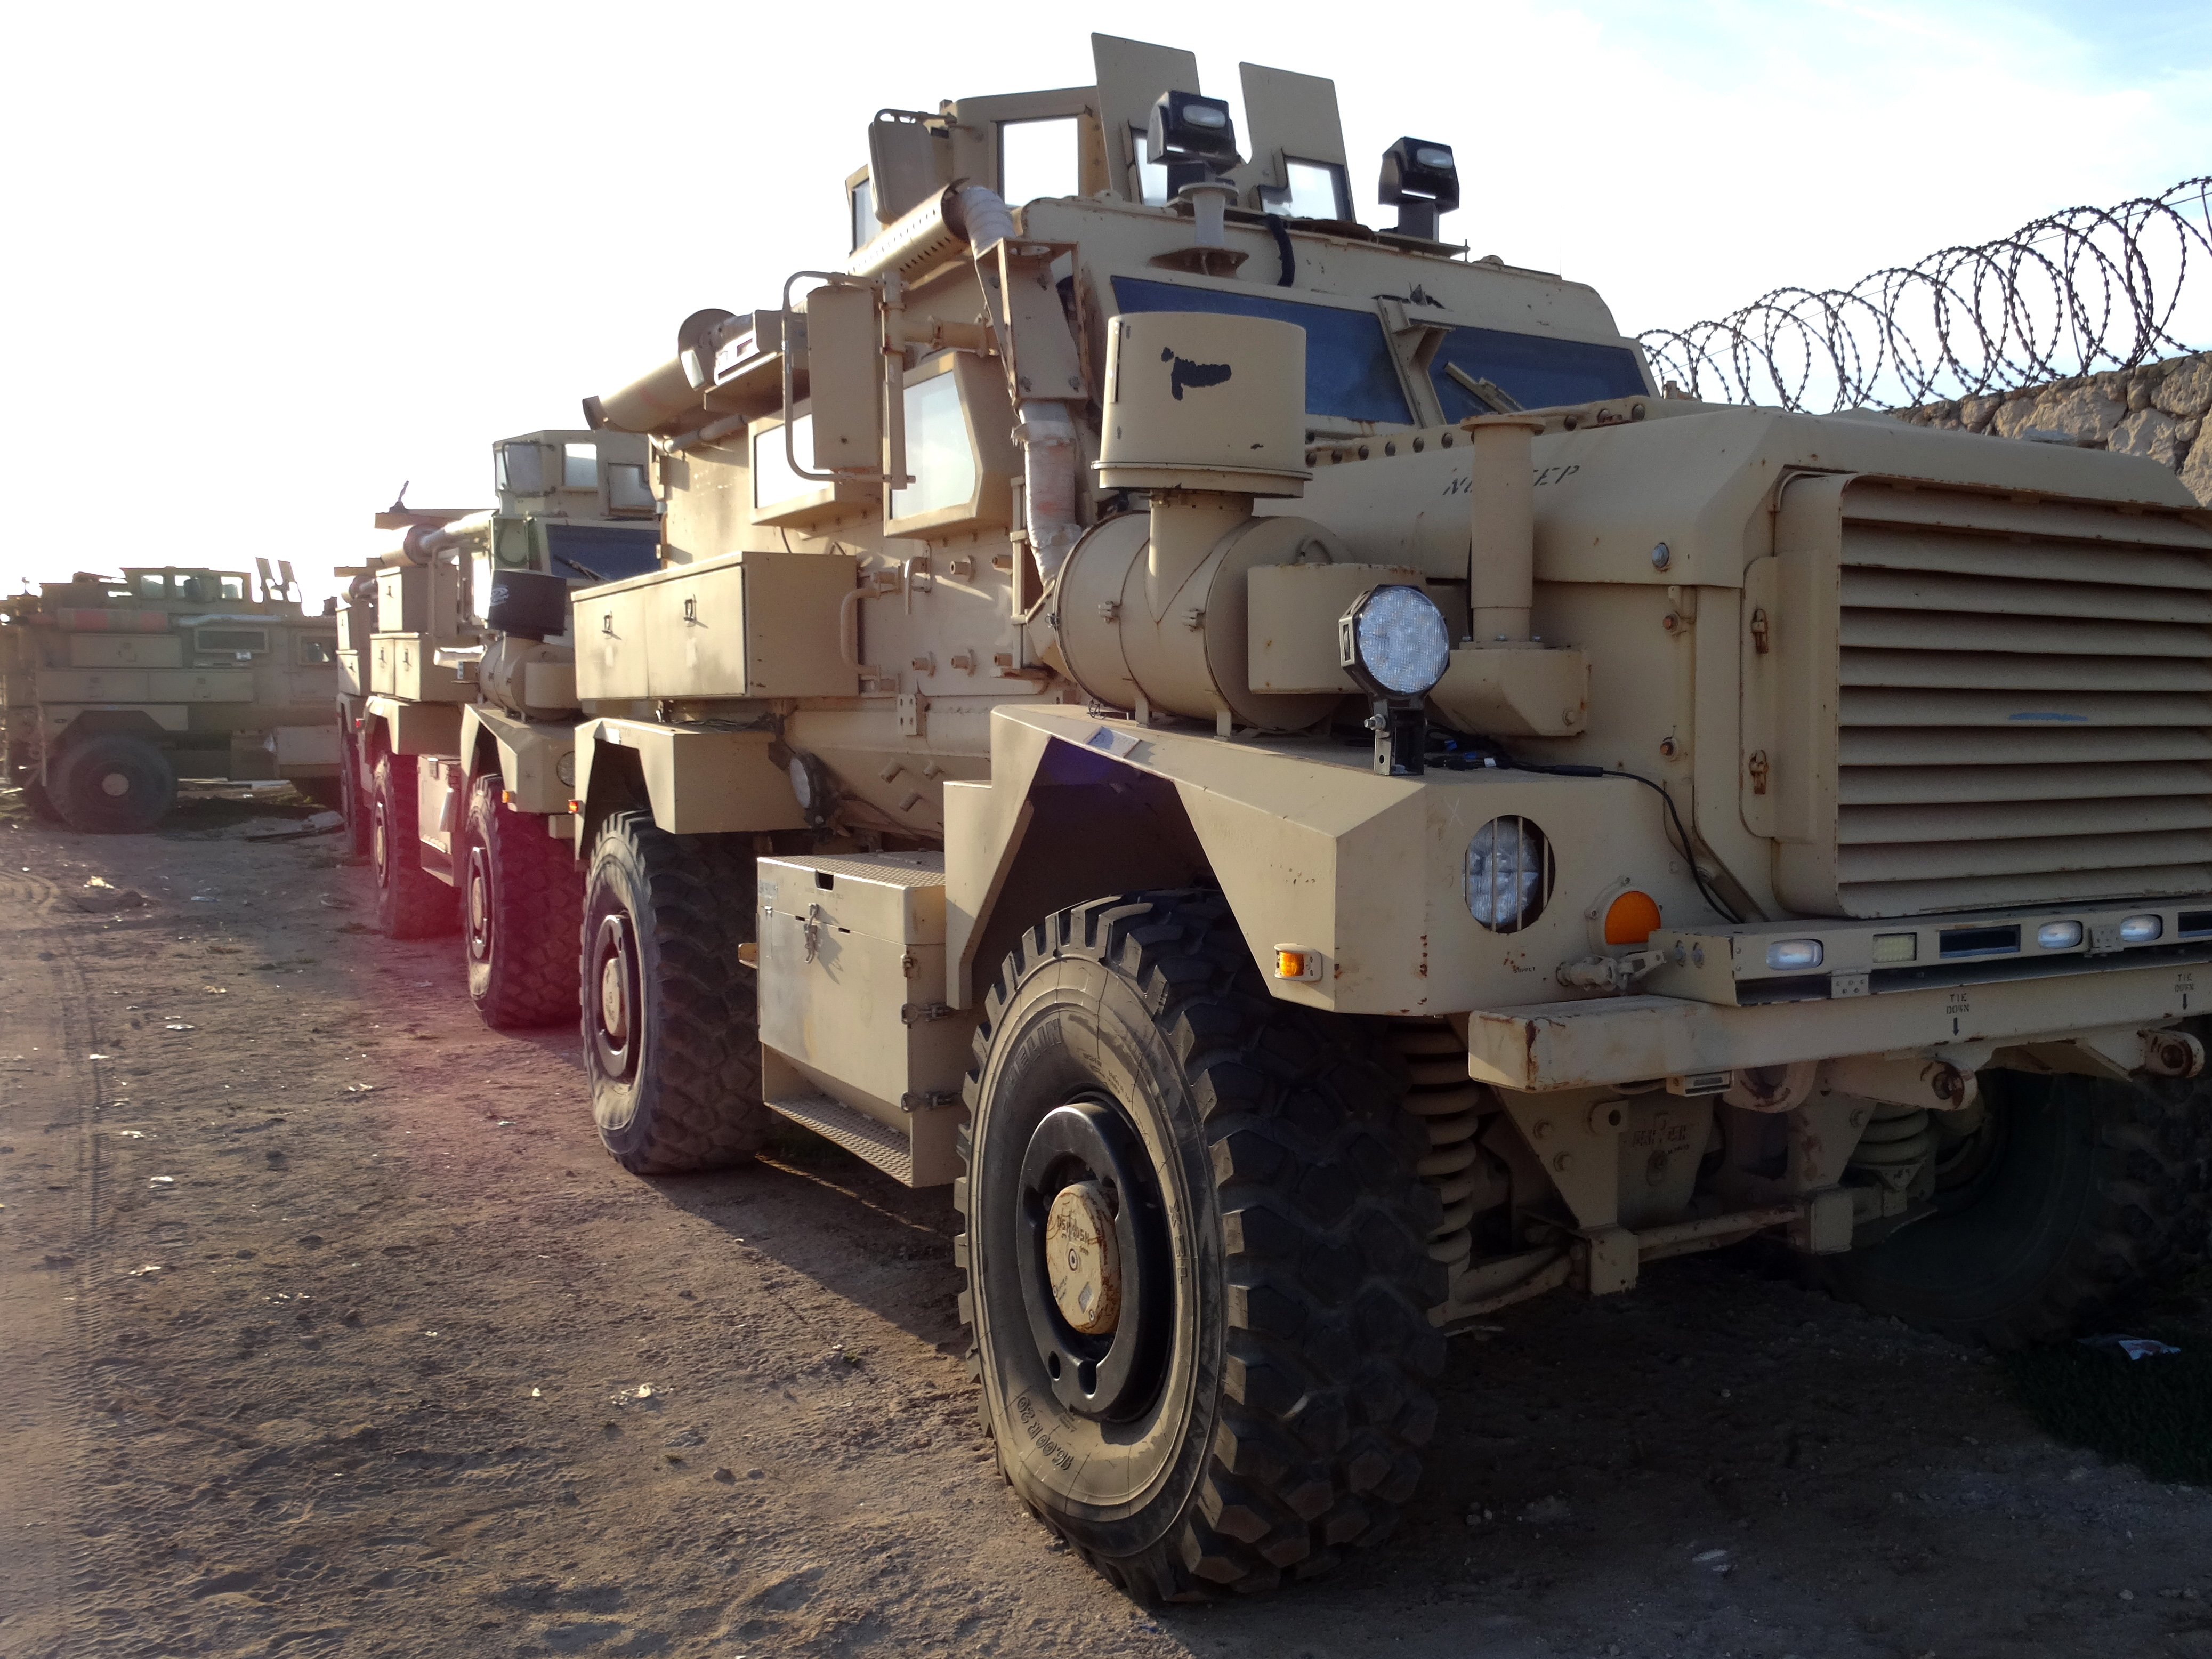 Four Mine-Resistant Ambushed Protective Vehicles that are part of the 20 vehicles that will be donated to Troop Contributing Countries Uganda and Burundi, wait to be turned over at the end of the month, Jan 13, 2014. (U.S. Army Courtesy Photo)